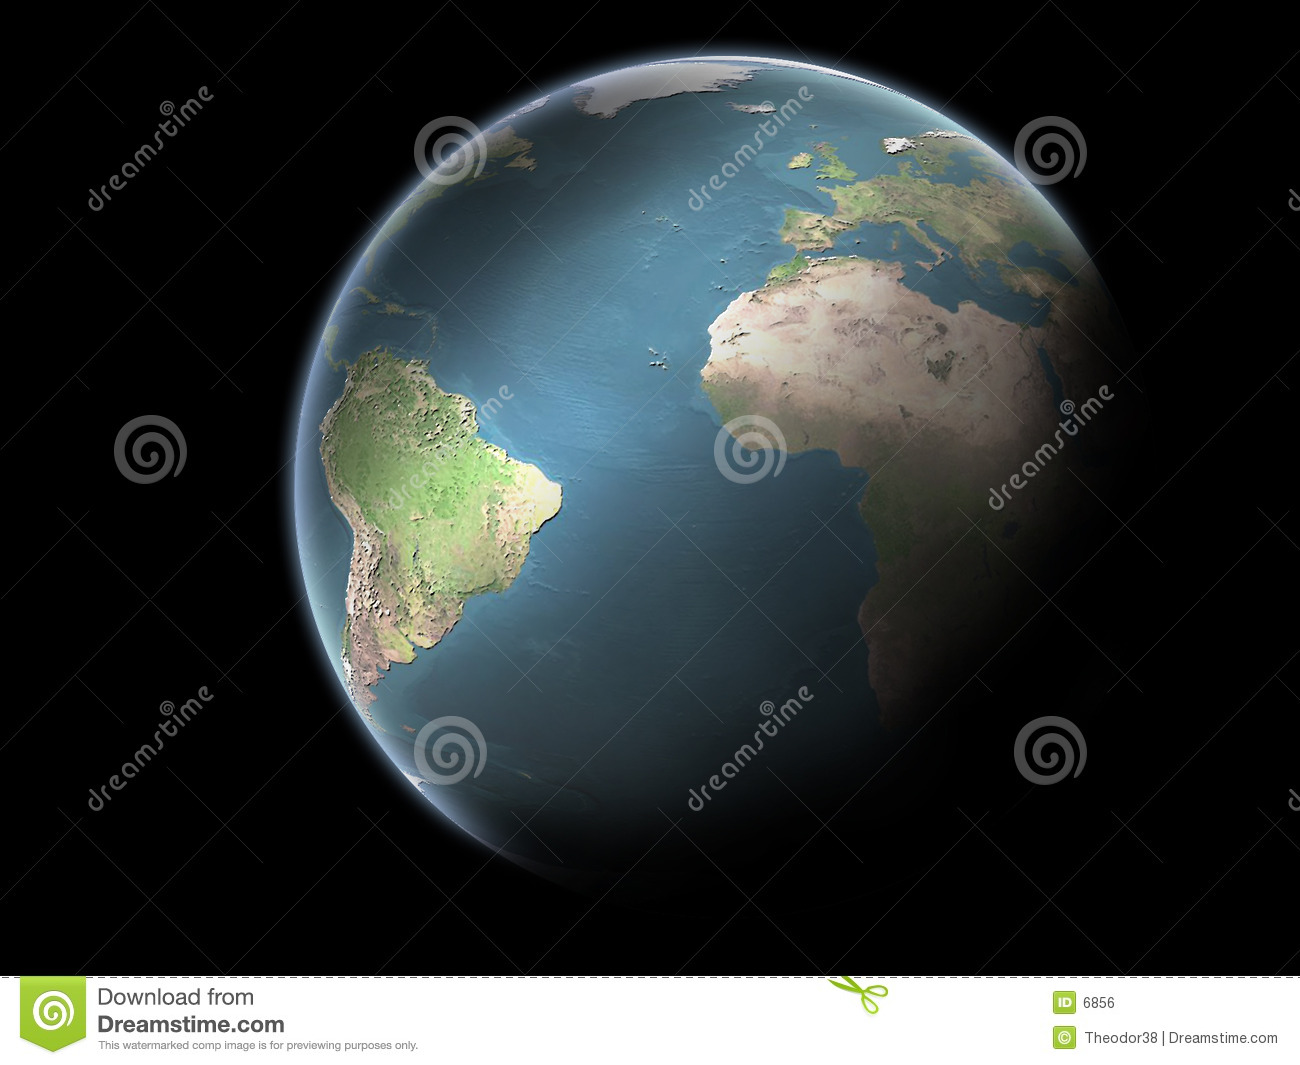 Planet Earth without clouds